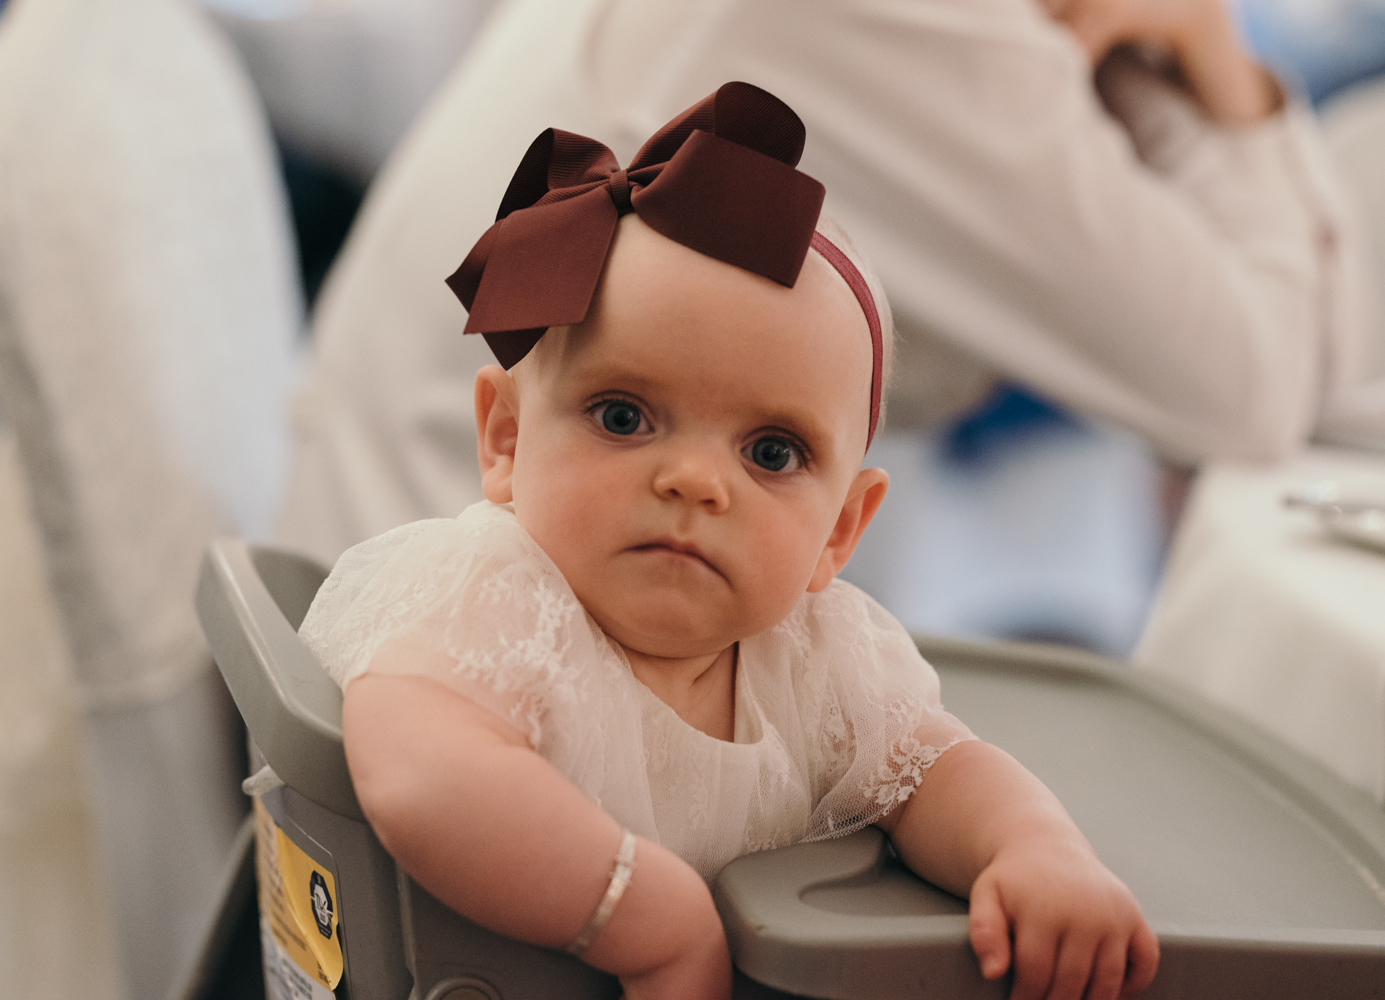 One of the youngest guests does not quite know what to make of my camera